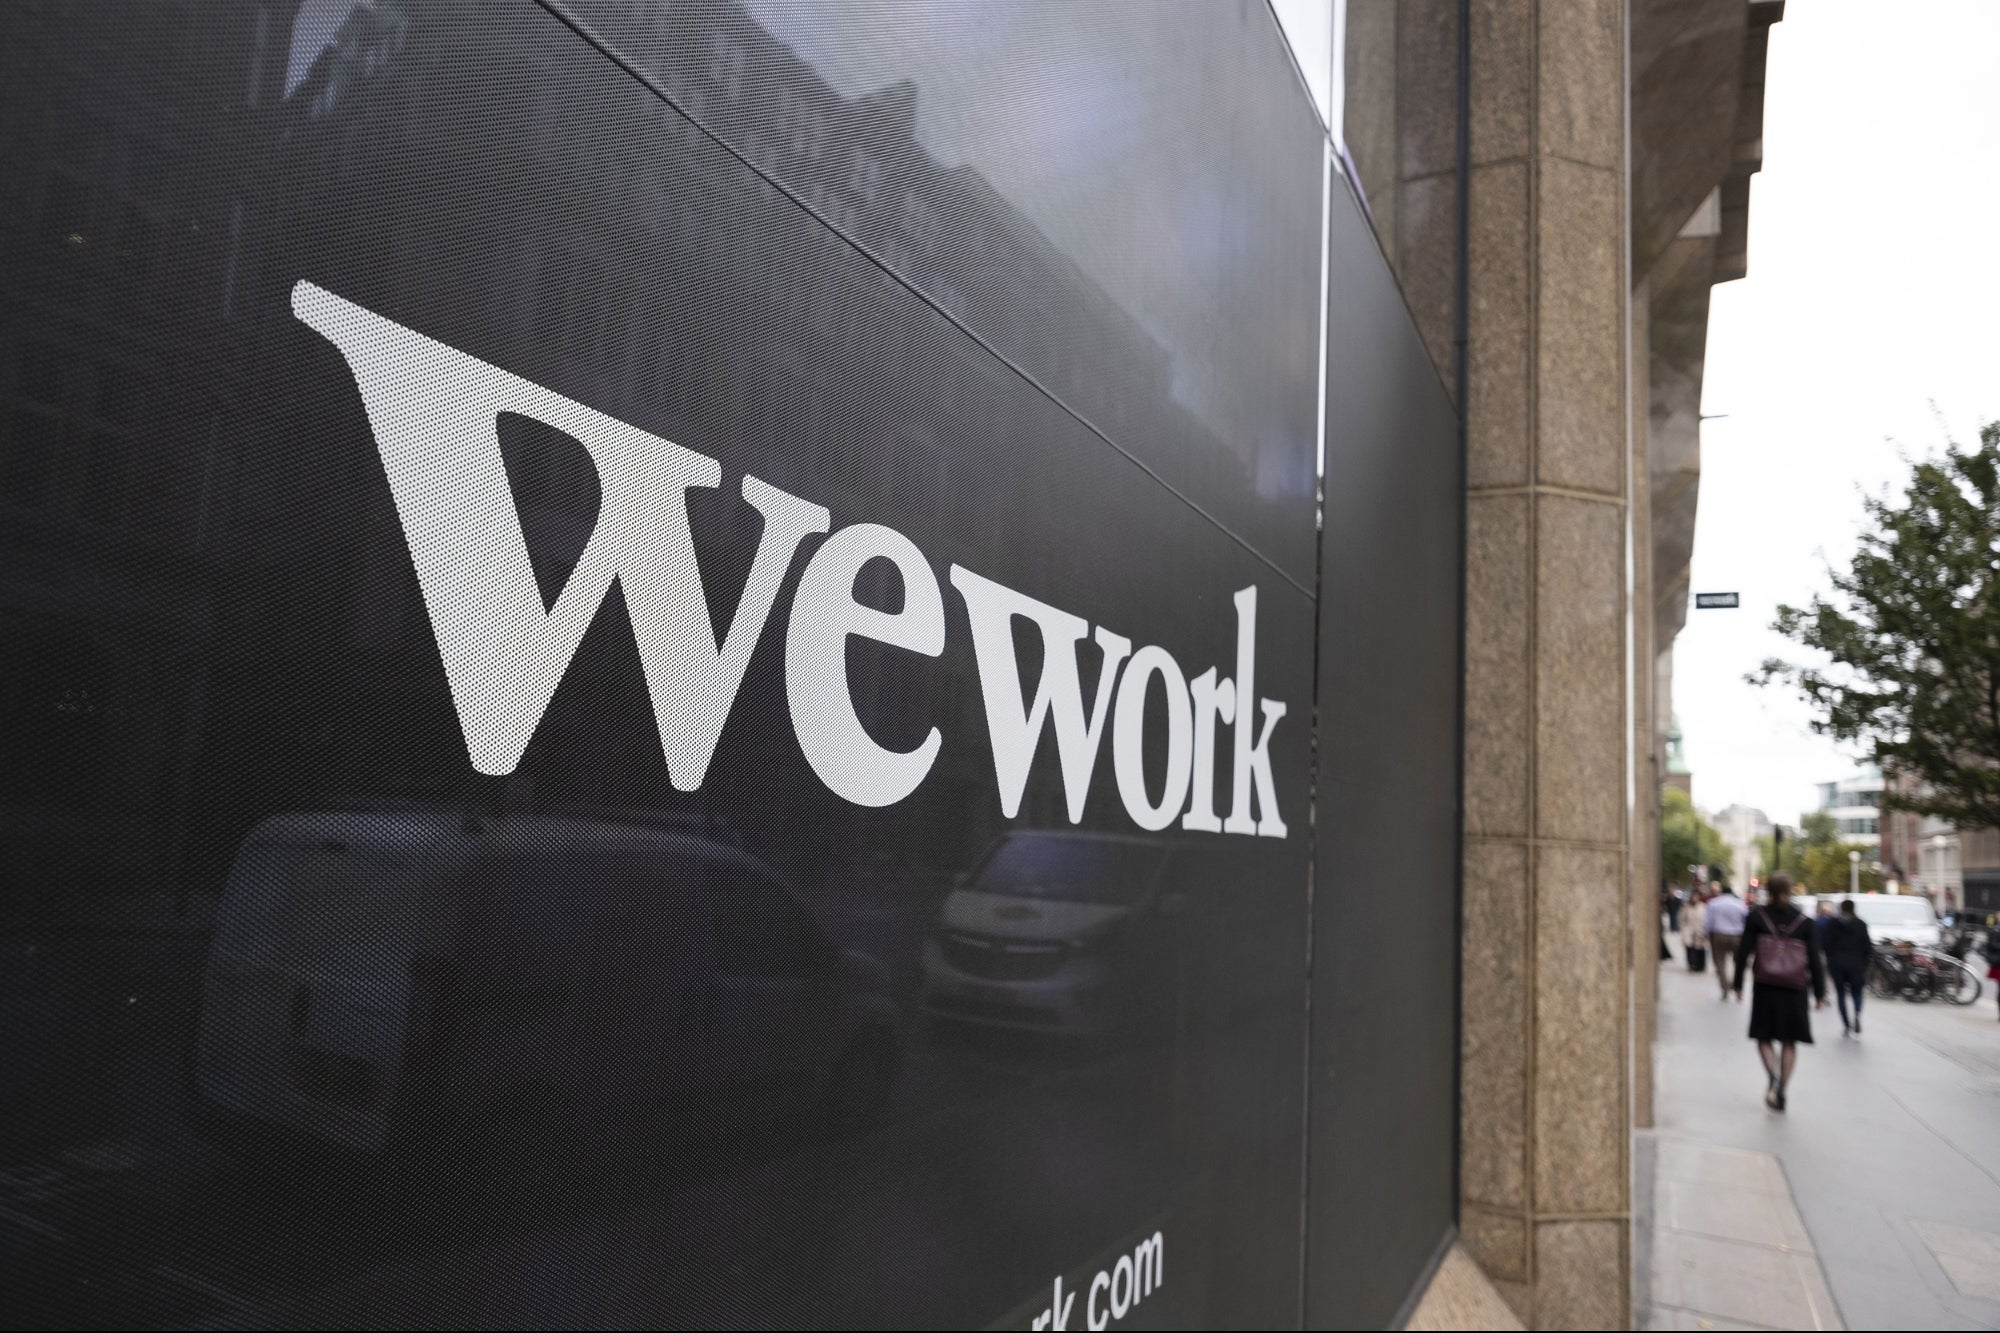 After failing miserably the first time around, WeWork merges with NBA owner's SPAC for second chance to go public